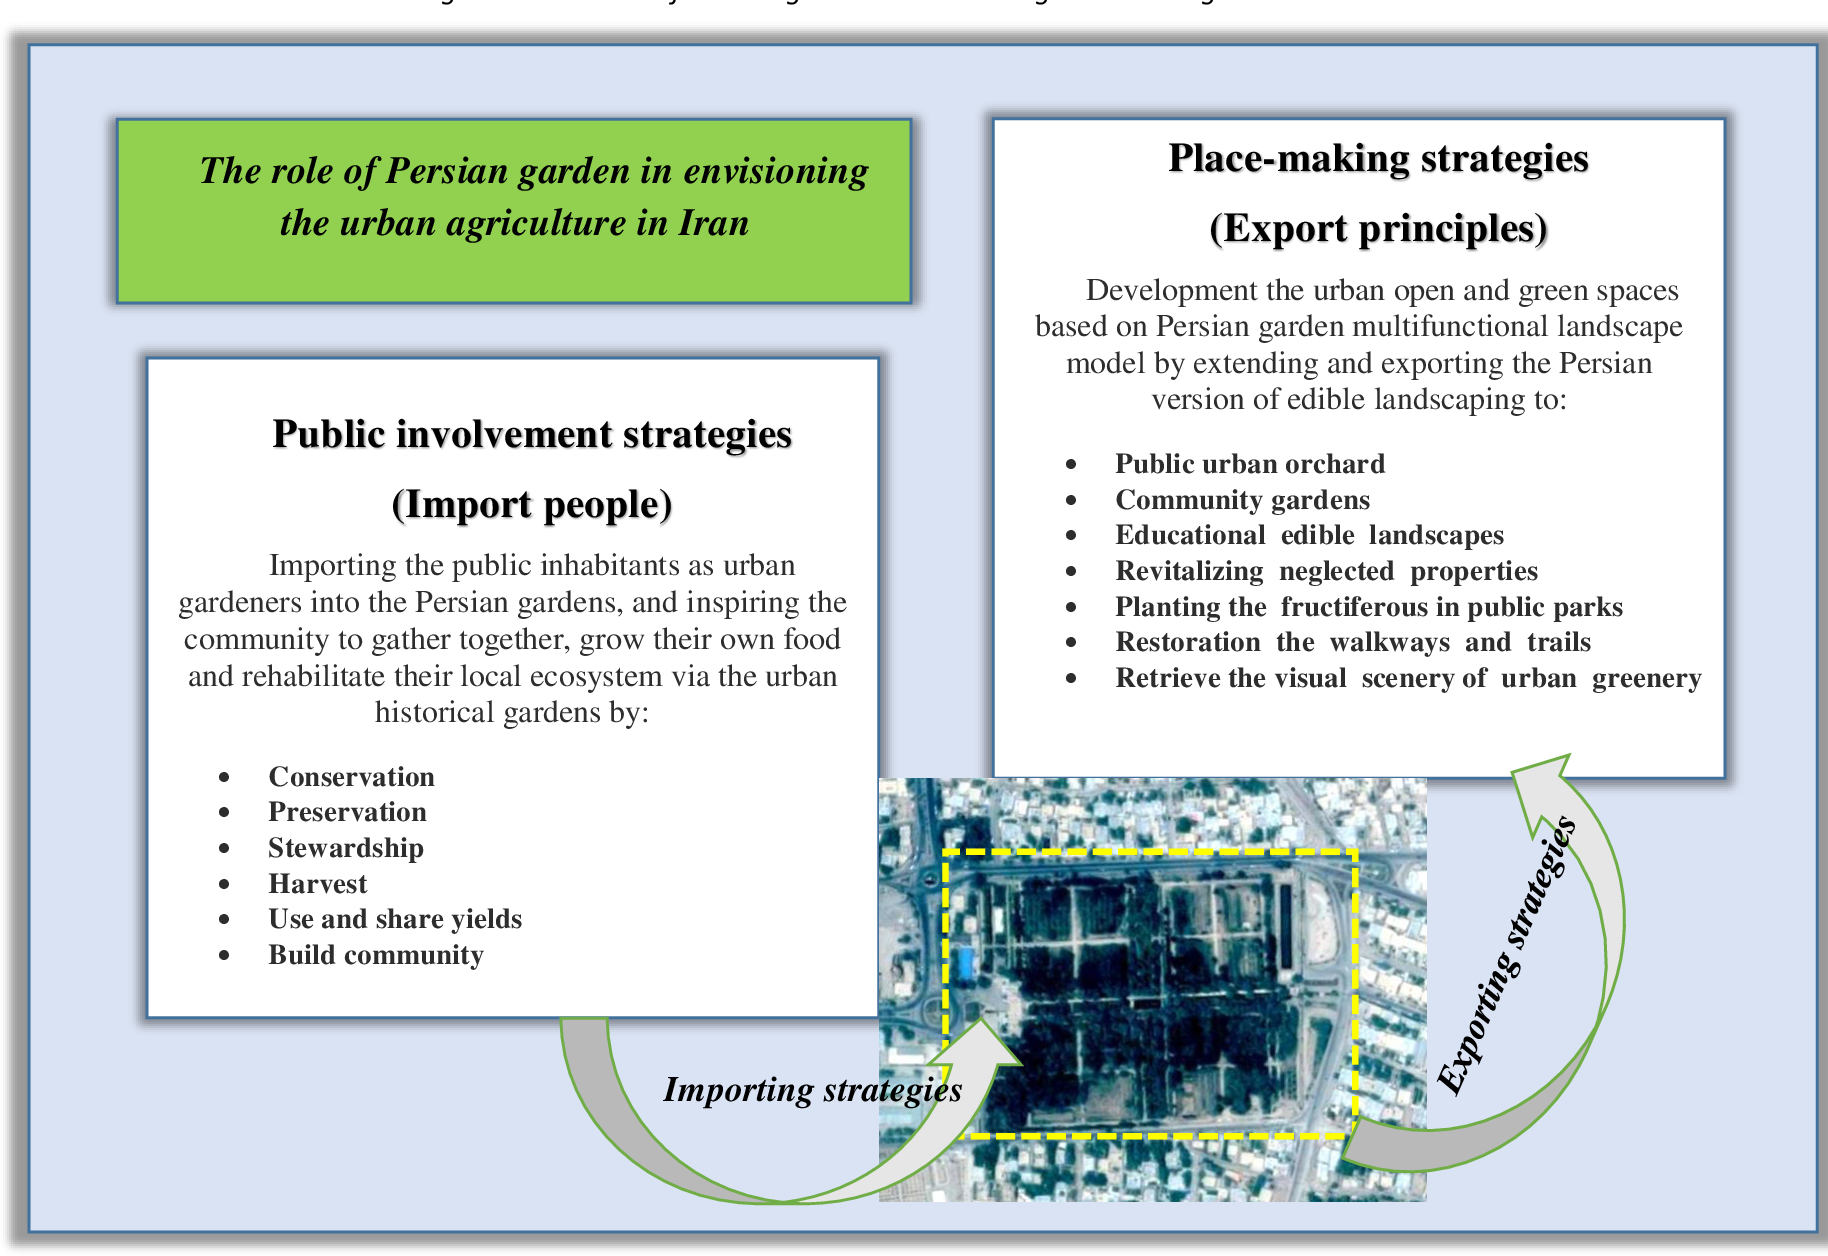 Pdf Urban Agriculture As A Tool For City And Landscape Planning In Iran With Emphasize On The Role Of Persian Garden Semantic Scholar